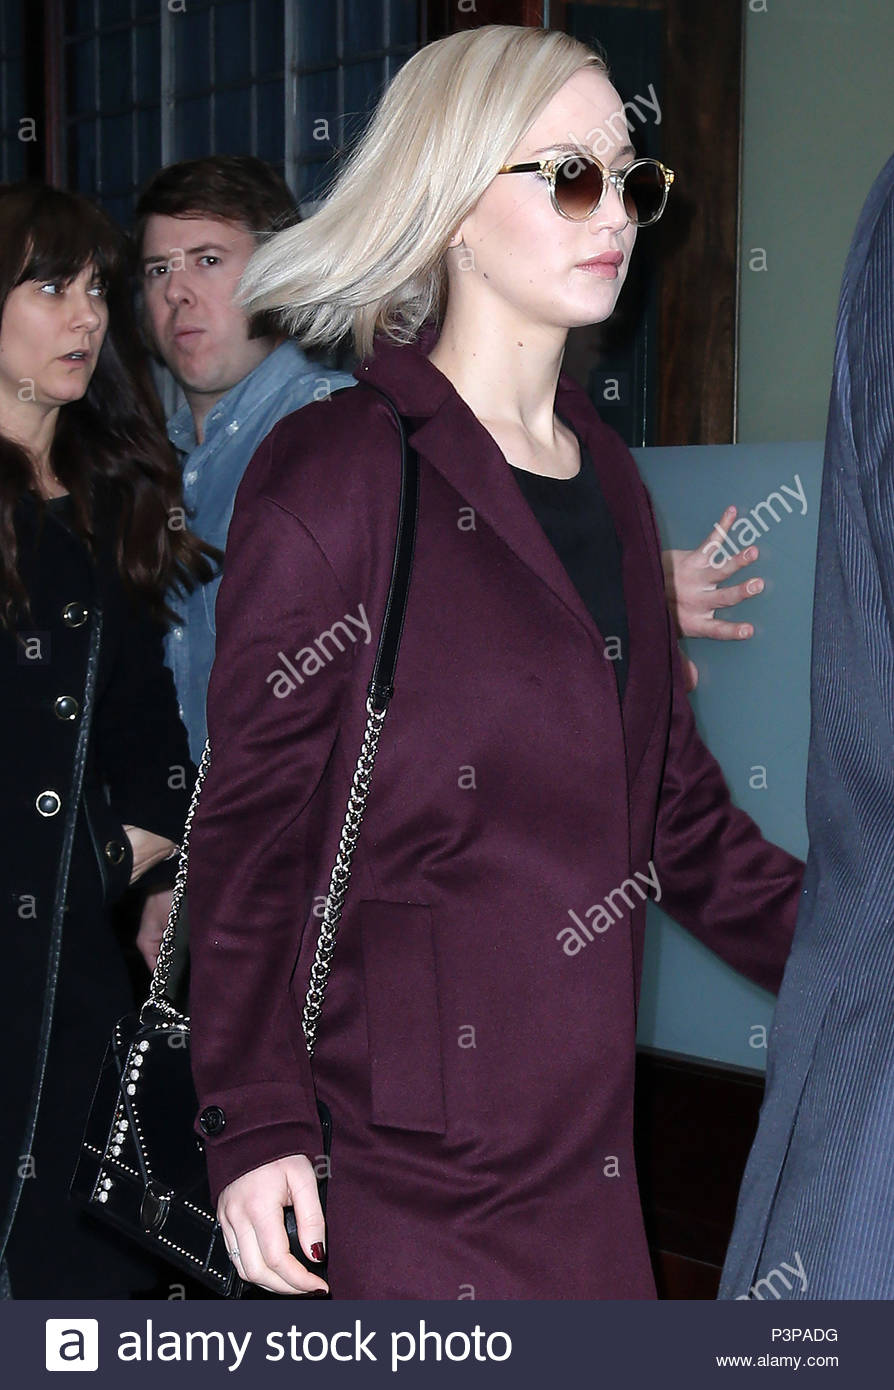 Jennifer lawrence leaving her hotel in nyc new foto